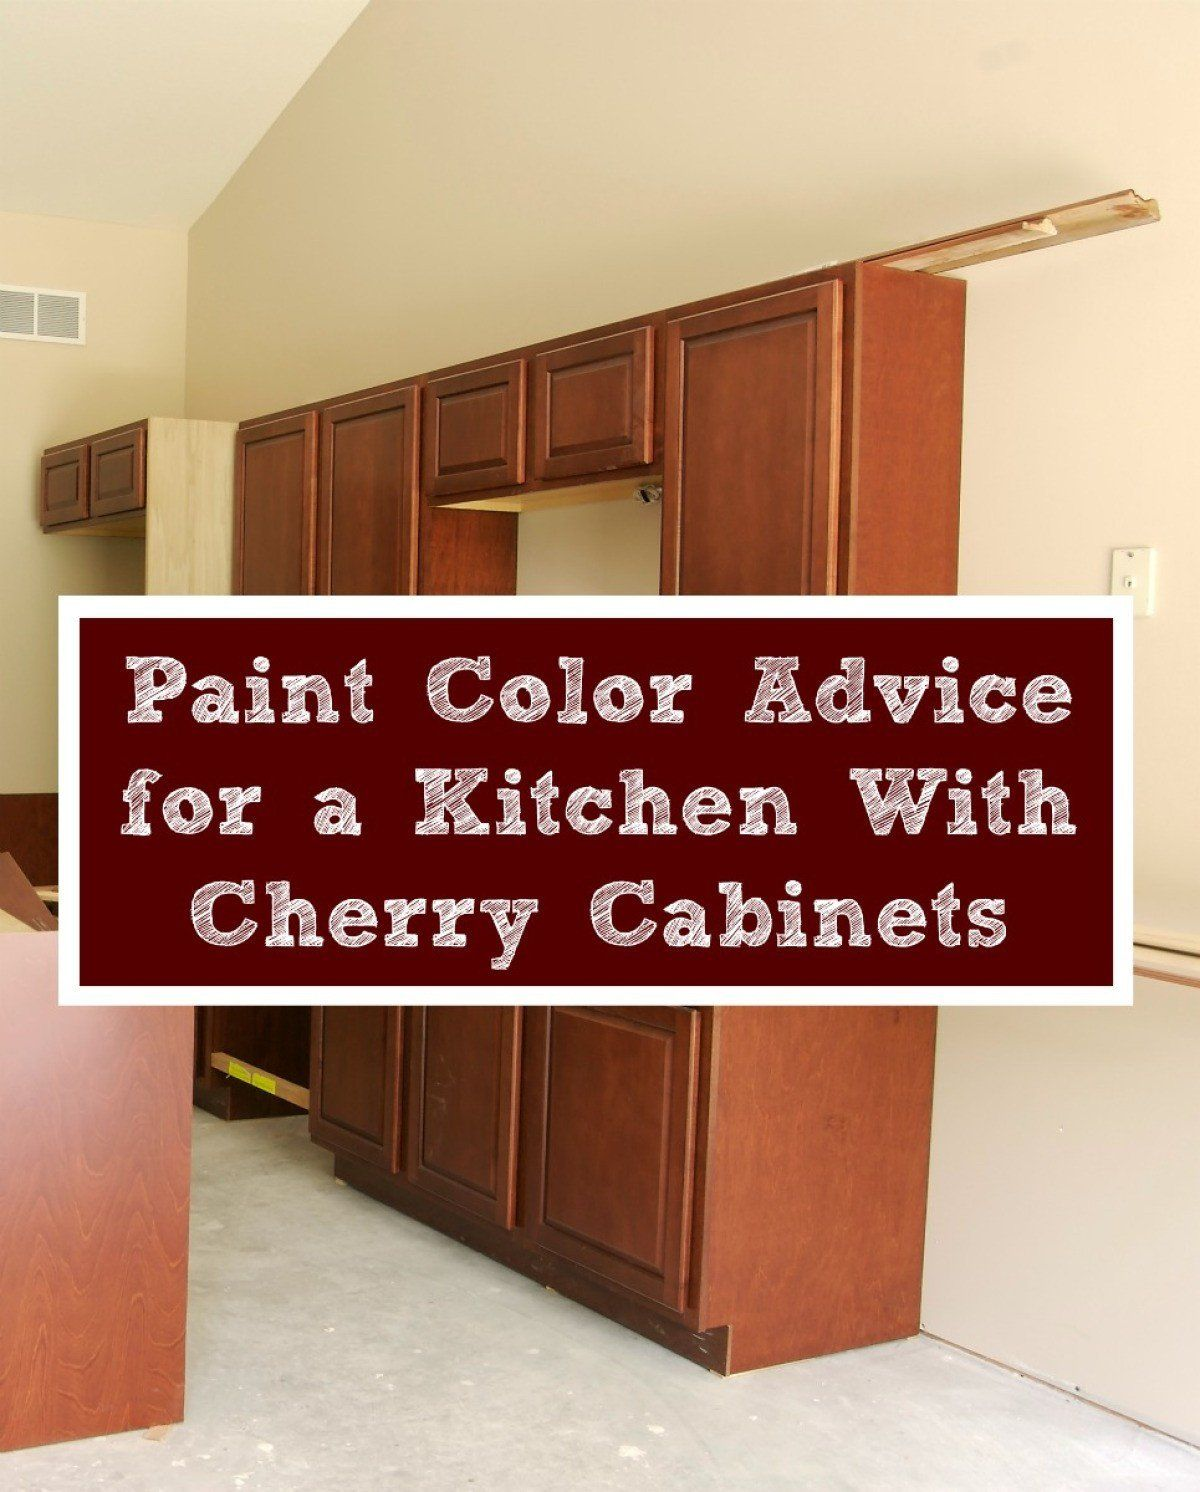 Kitchen Paint With Cherry Cabinet Inspirational Paint Color Advice For A Kitchen With Cherry In 2020 Cherry Wood Cabinets Cherry Cabinets Cherry Wood Kitchen Cabinets